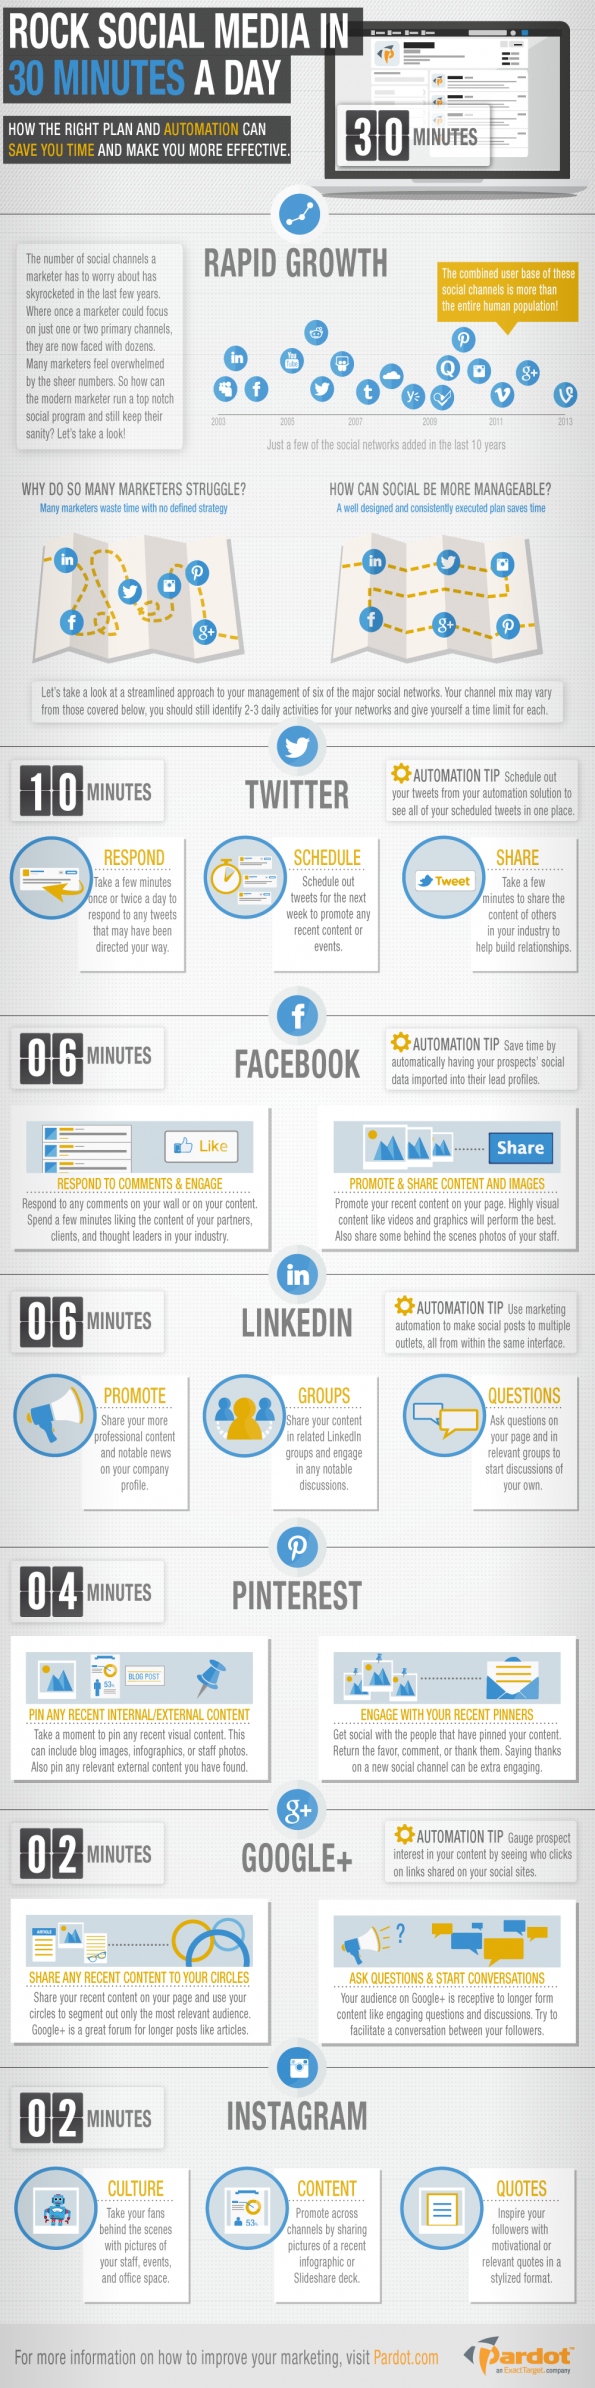 Het social media-zomerplan: 30 minutes a day [infographic] - Frankwatching